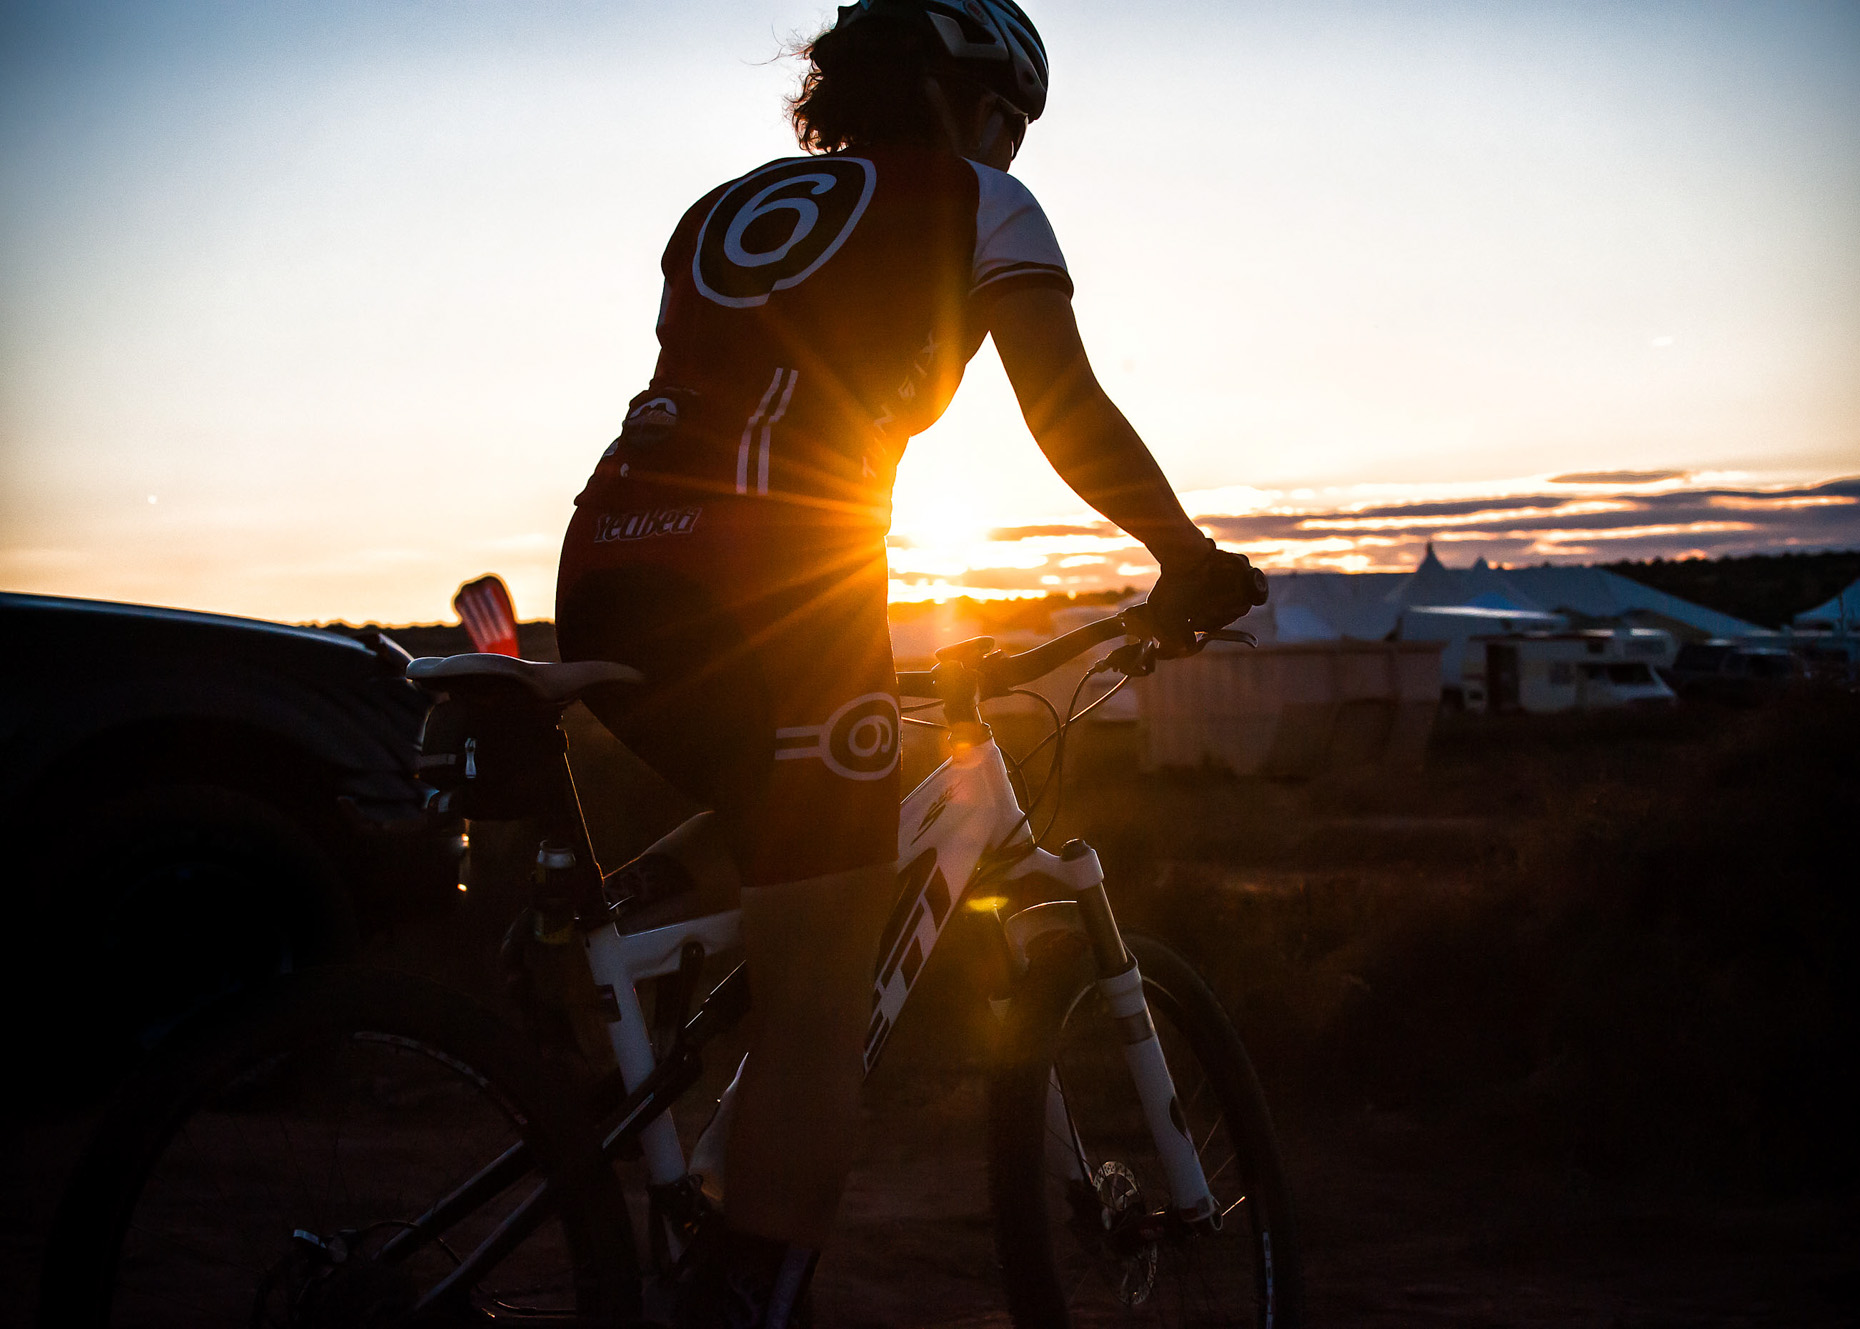 aaron-ingrao-24-hours-of-moab-mountainbike-race-sunset-sunflair-yeti